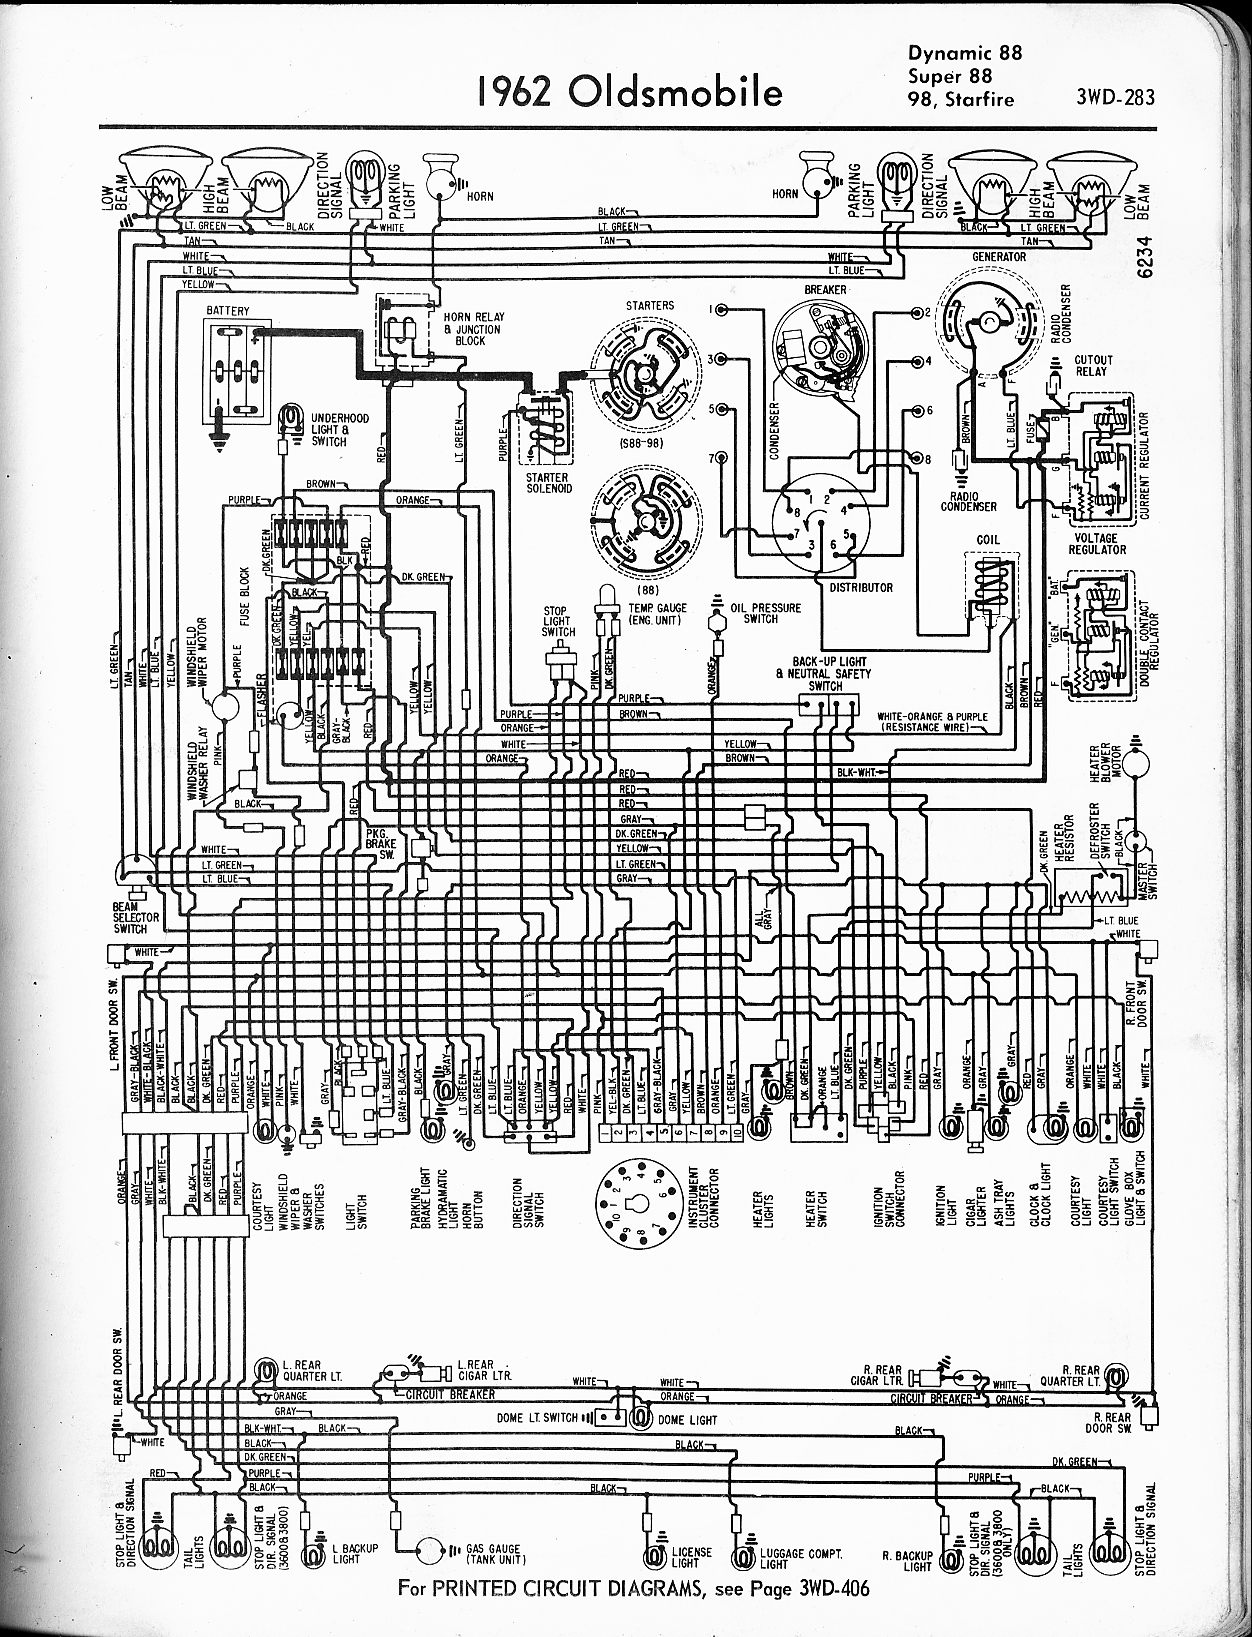 1962 oldsmobile wiring diagram 1962 wiring diagrams online oldsmobile wiring diagrams the old car manual project